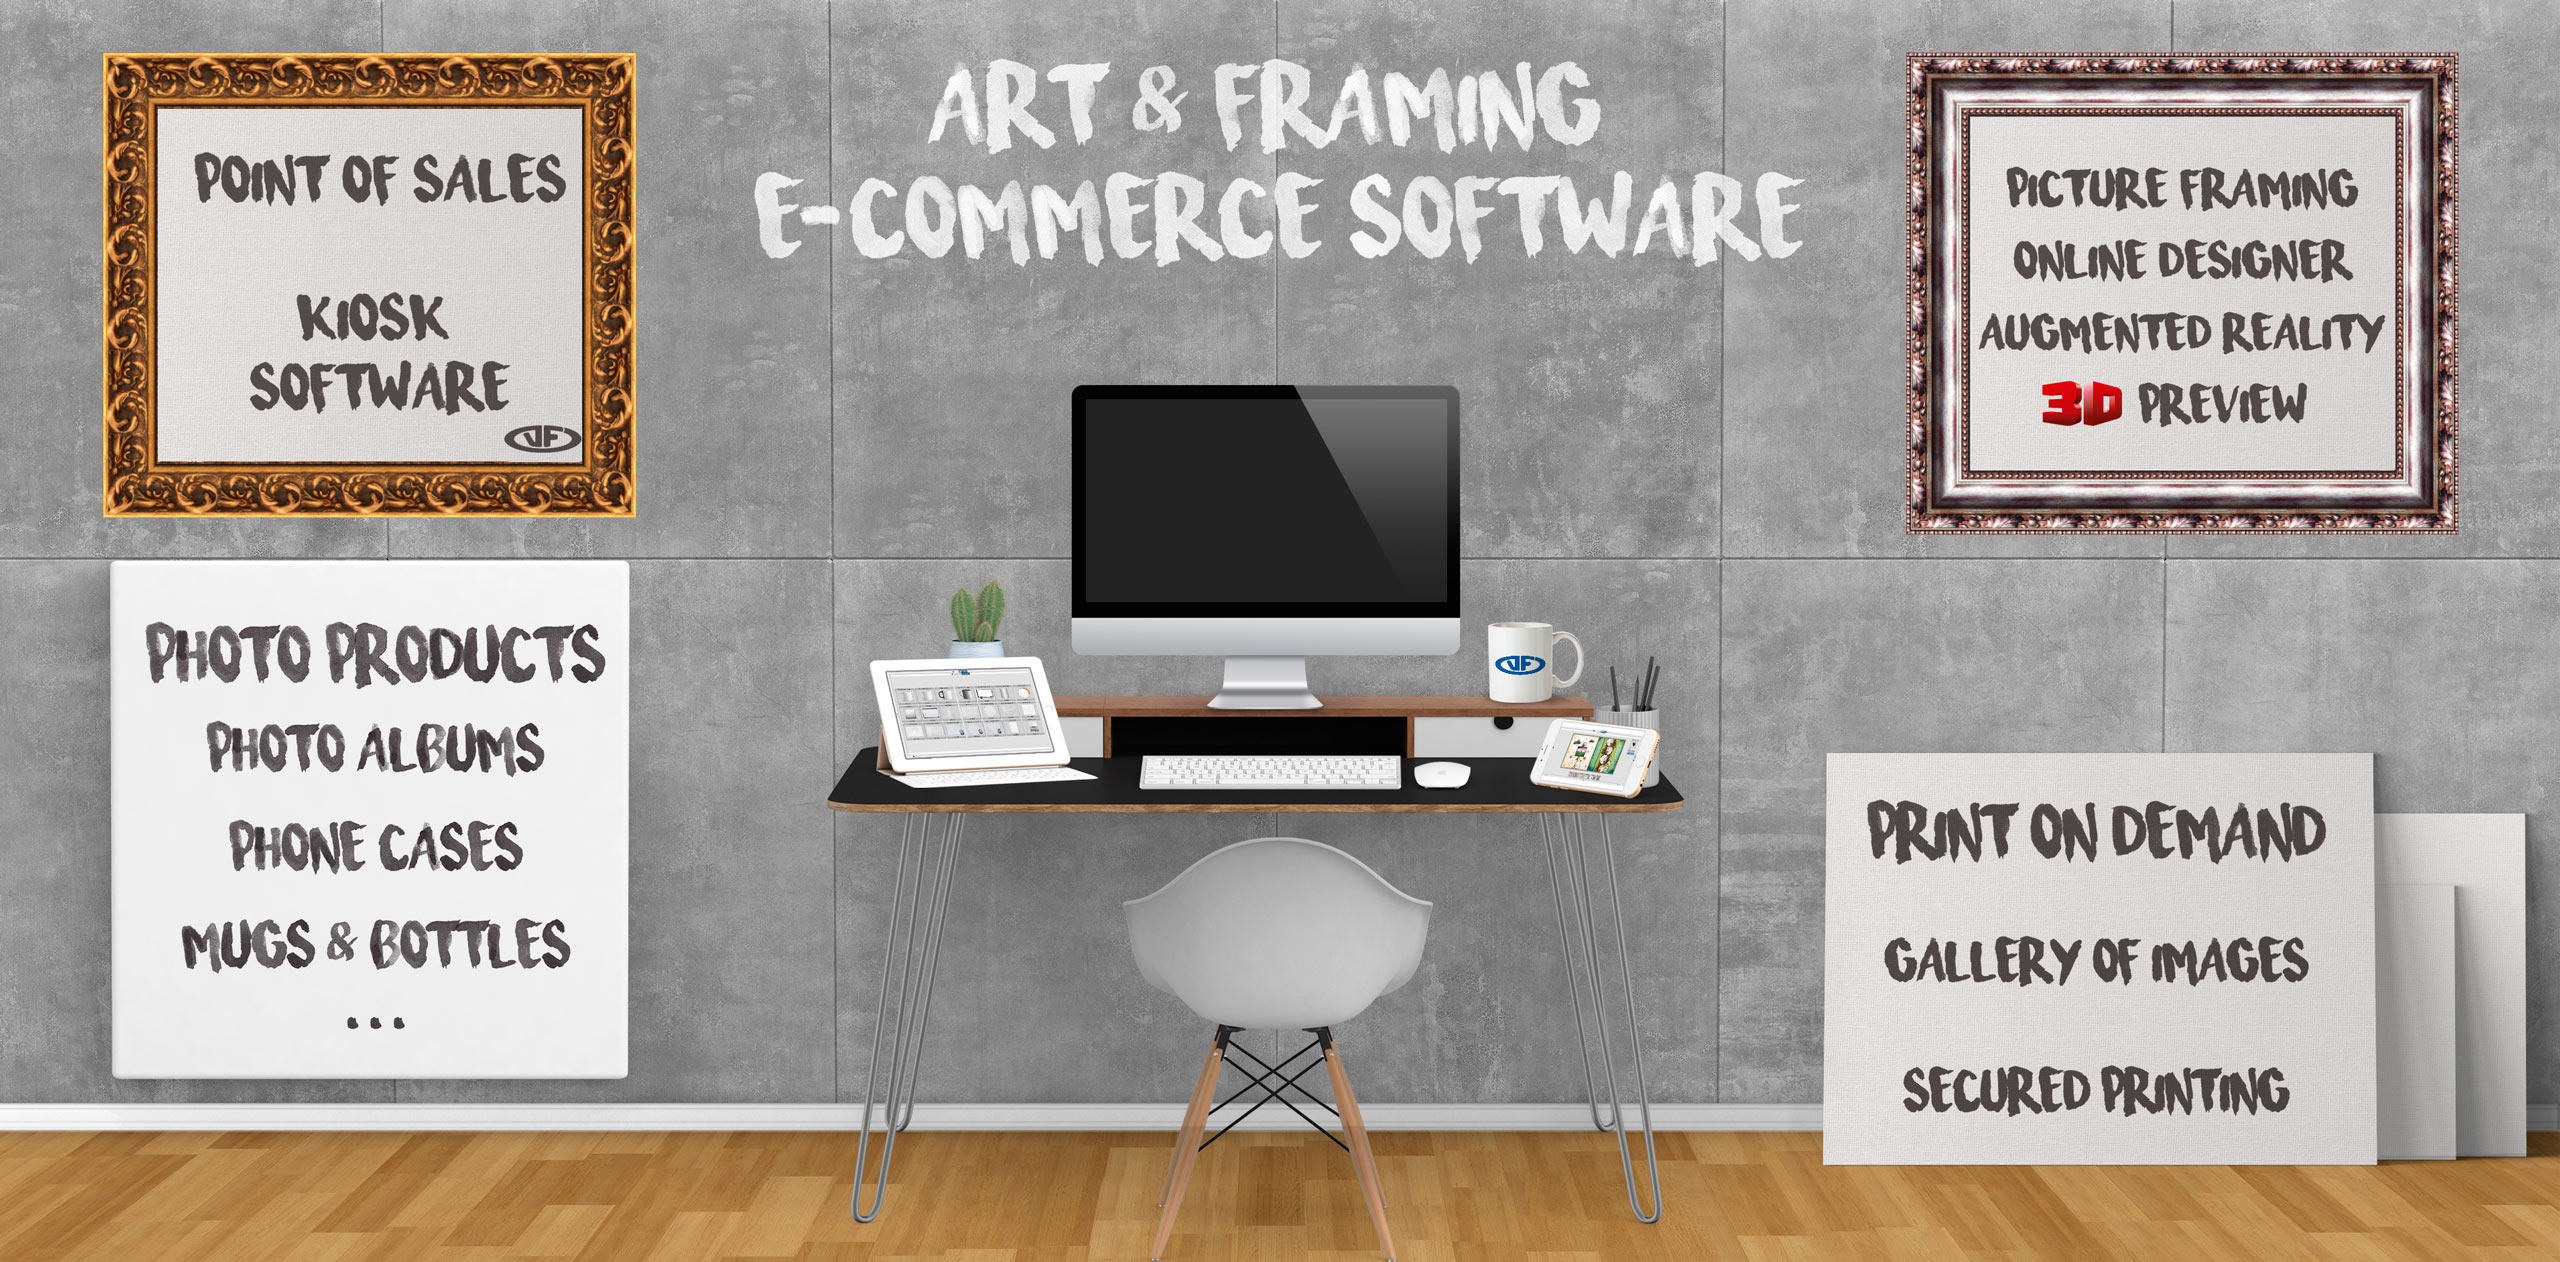 Online Picture Framing Software